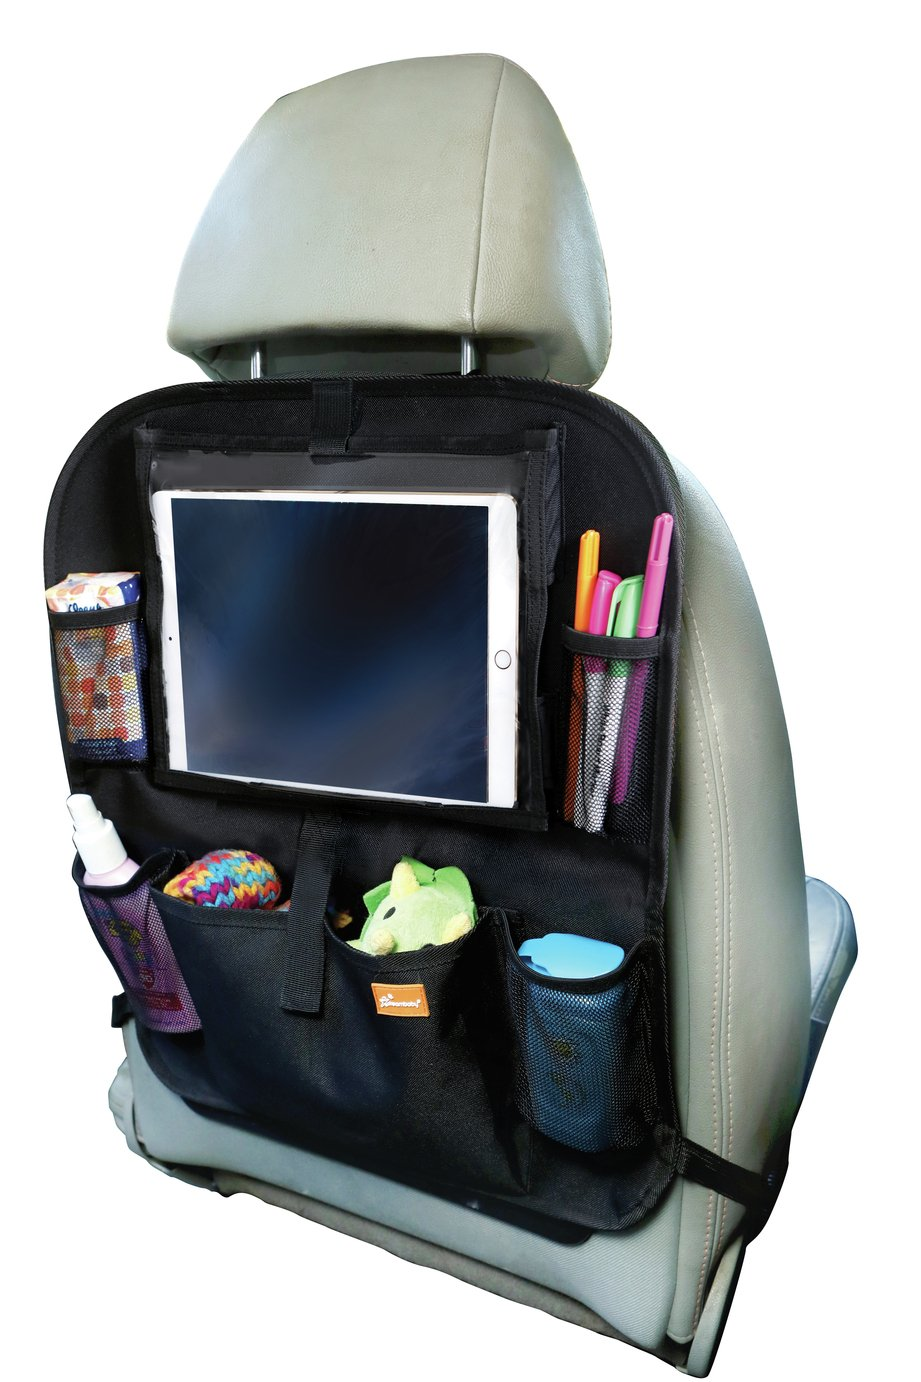 Dreambaby Seat Organiser and Tablet Holder